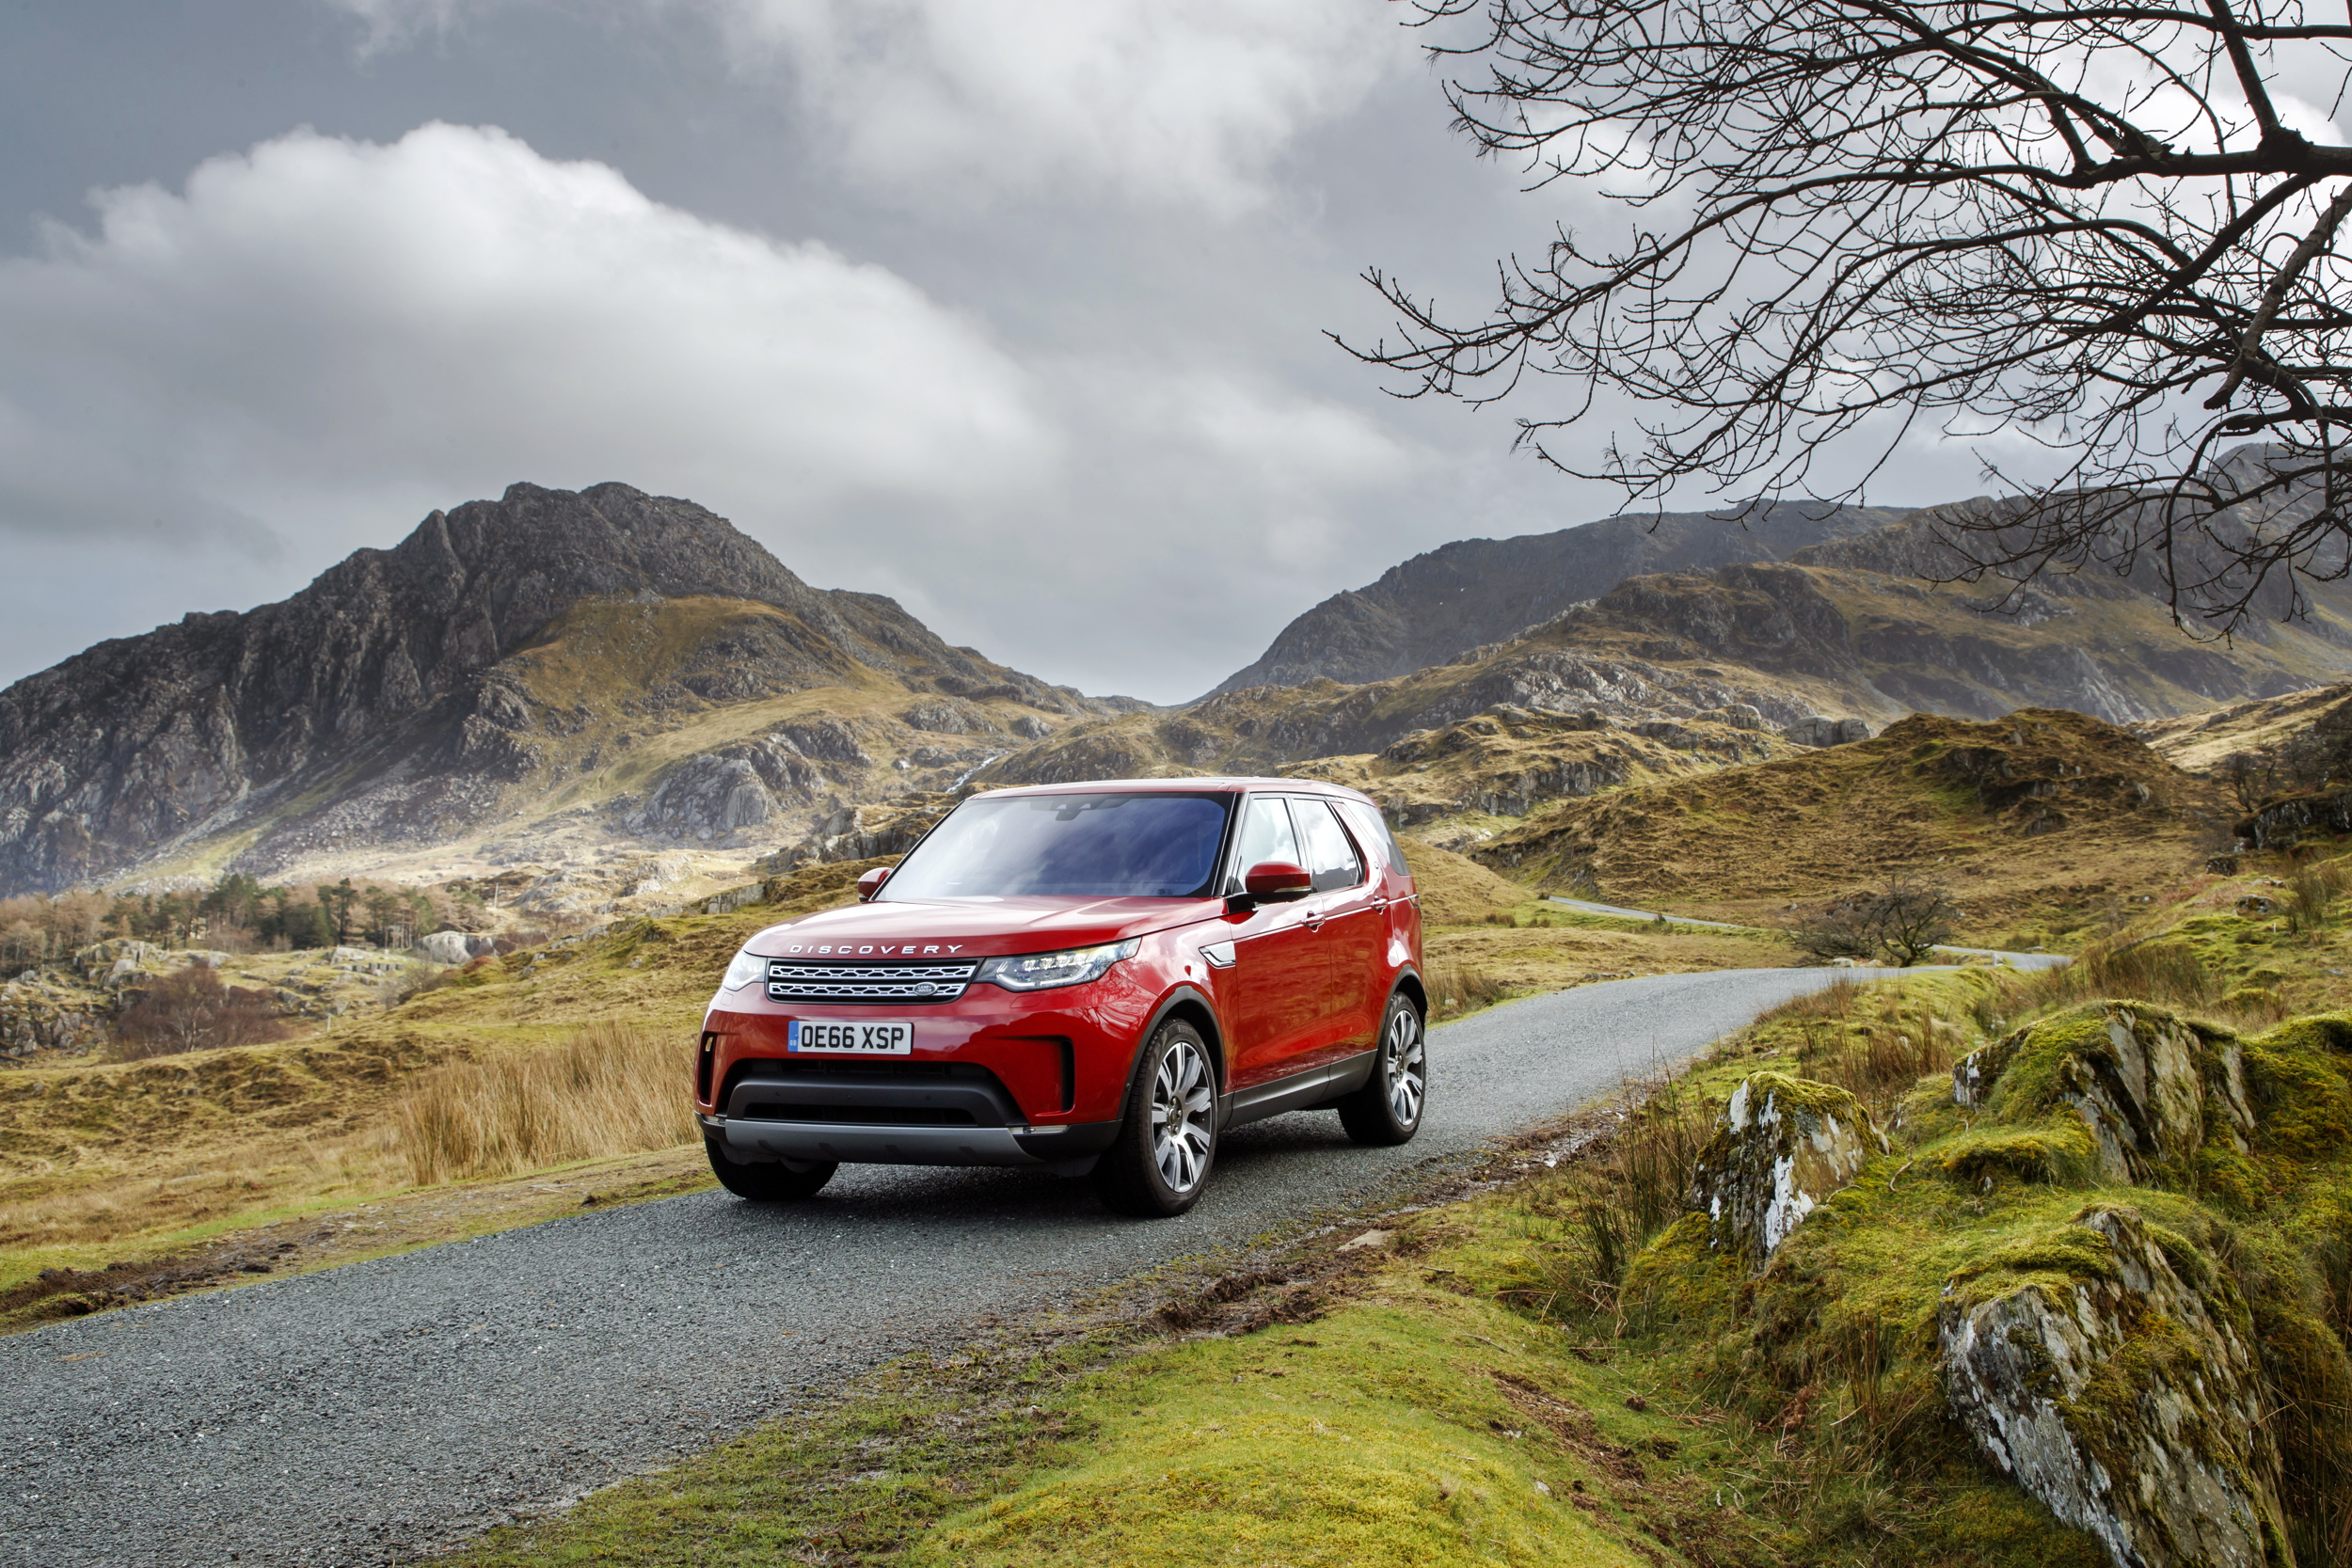 https://www.flatoutmag.co.uk/wp-content/uploads/2017/03/2017-Land-Rover-Discovery-Sd4.jpg